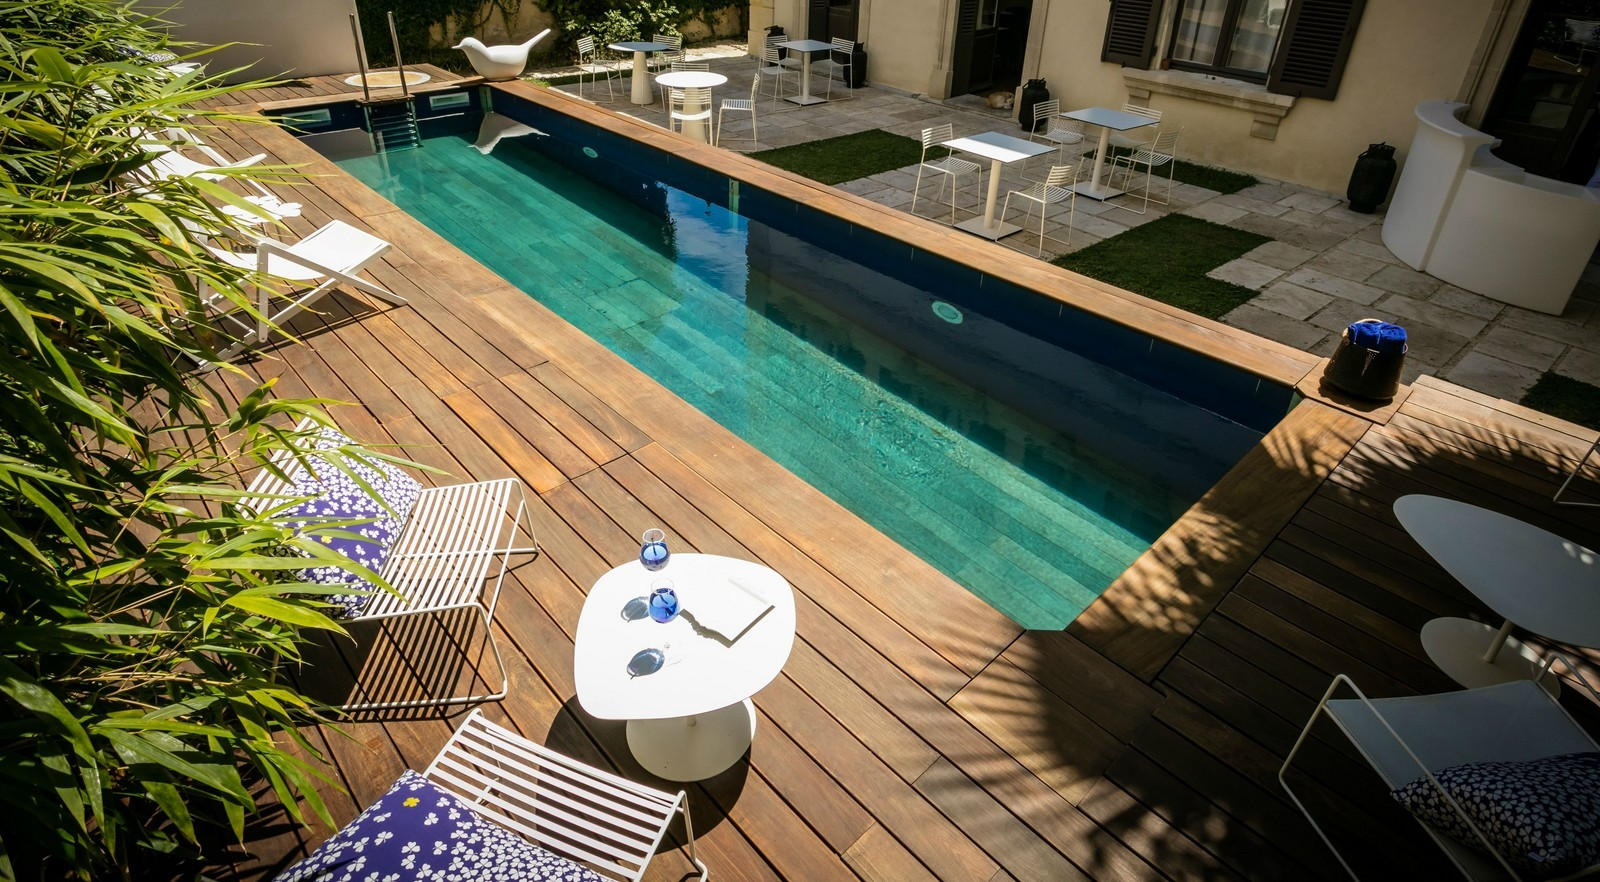 L 39 hotel particulier b ziers 4 toiles for Piscine beziers